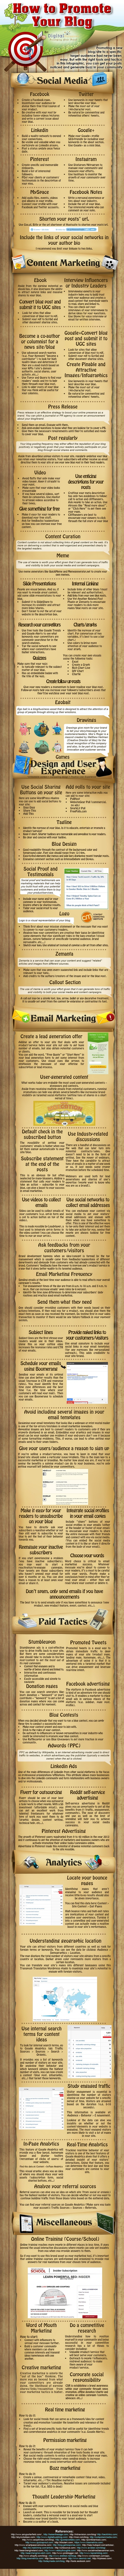 how-to-promote-your-blog-infographic1